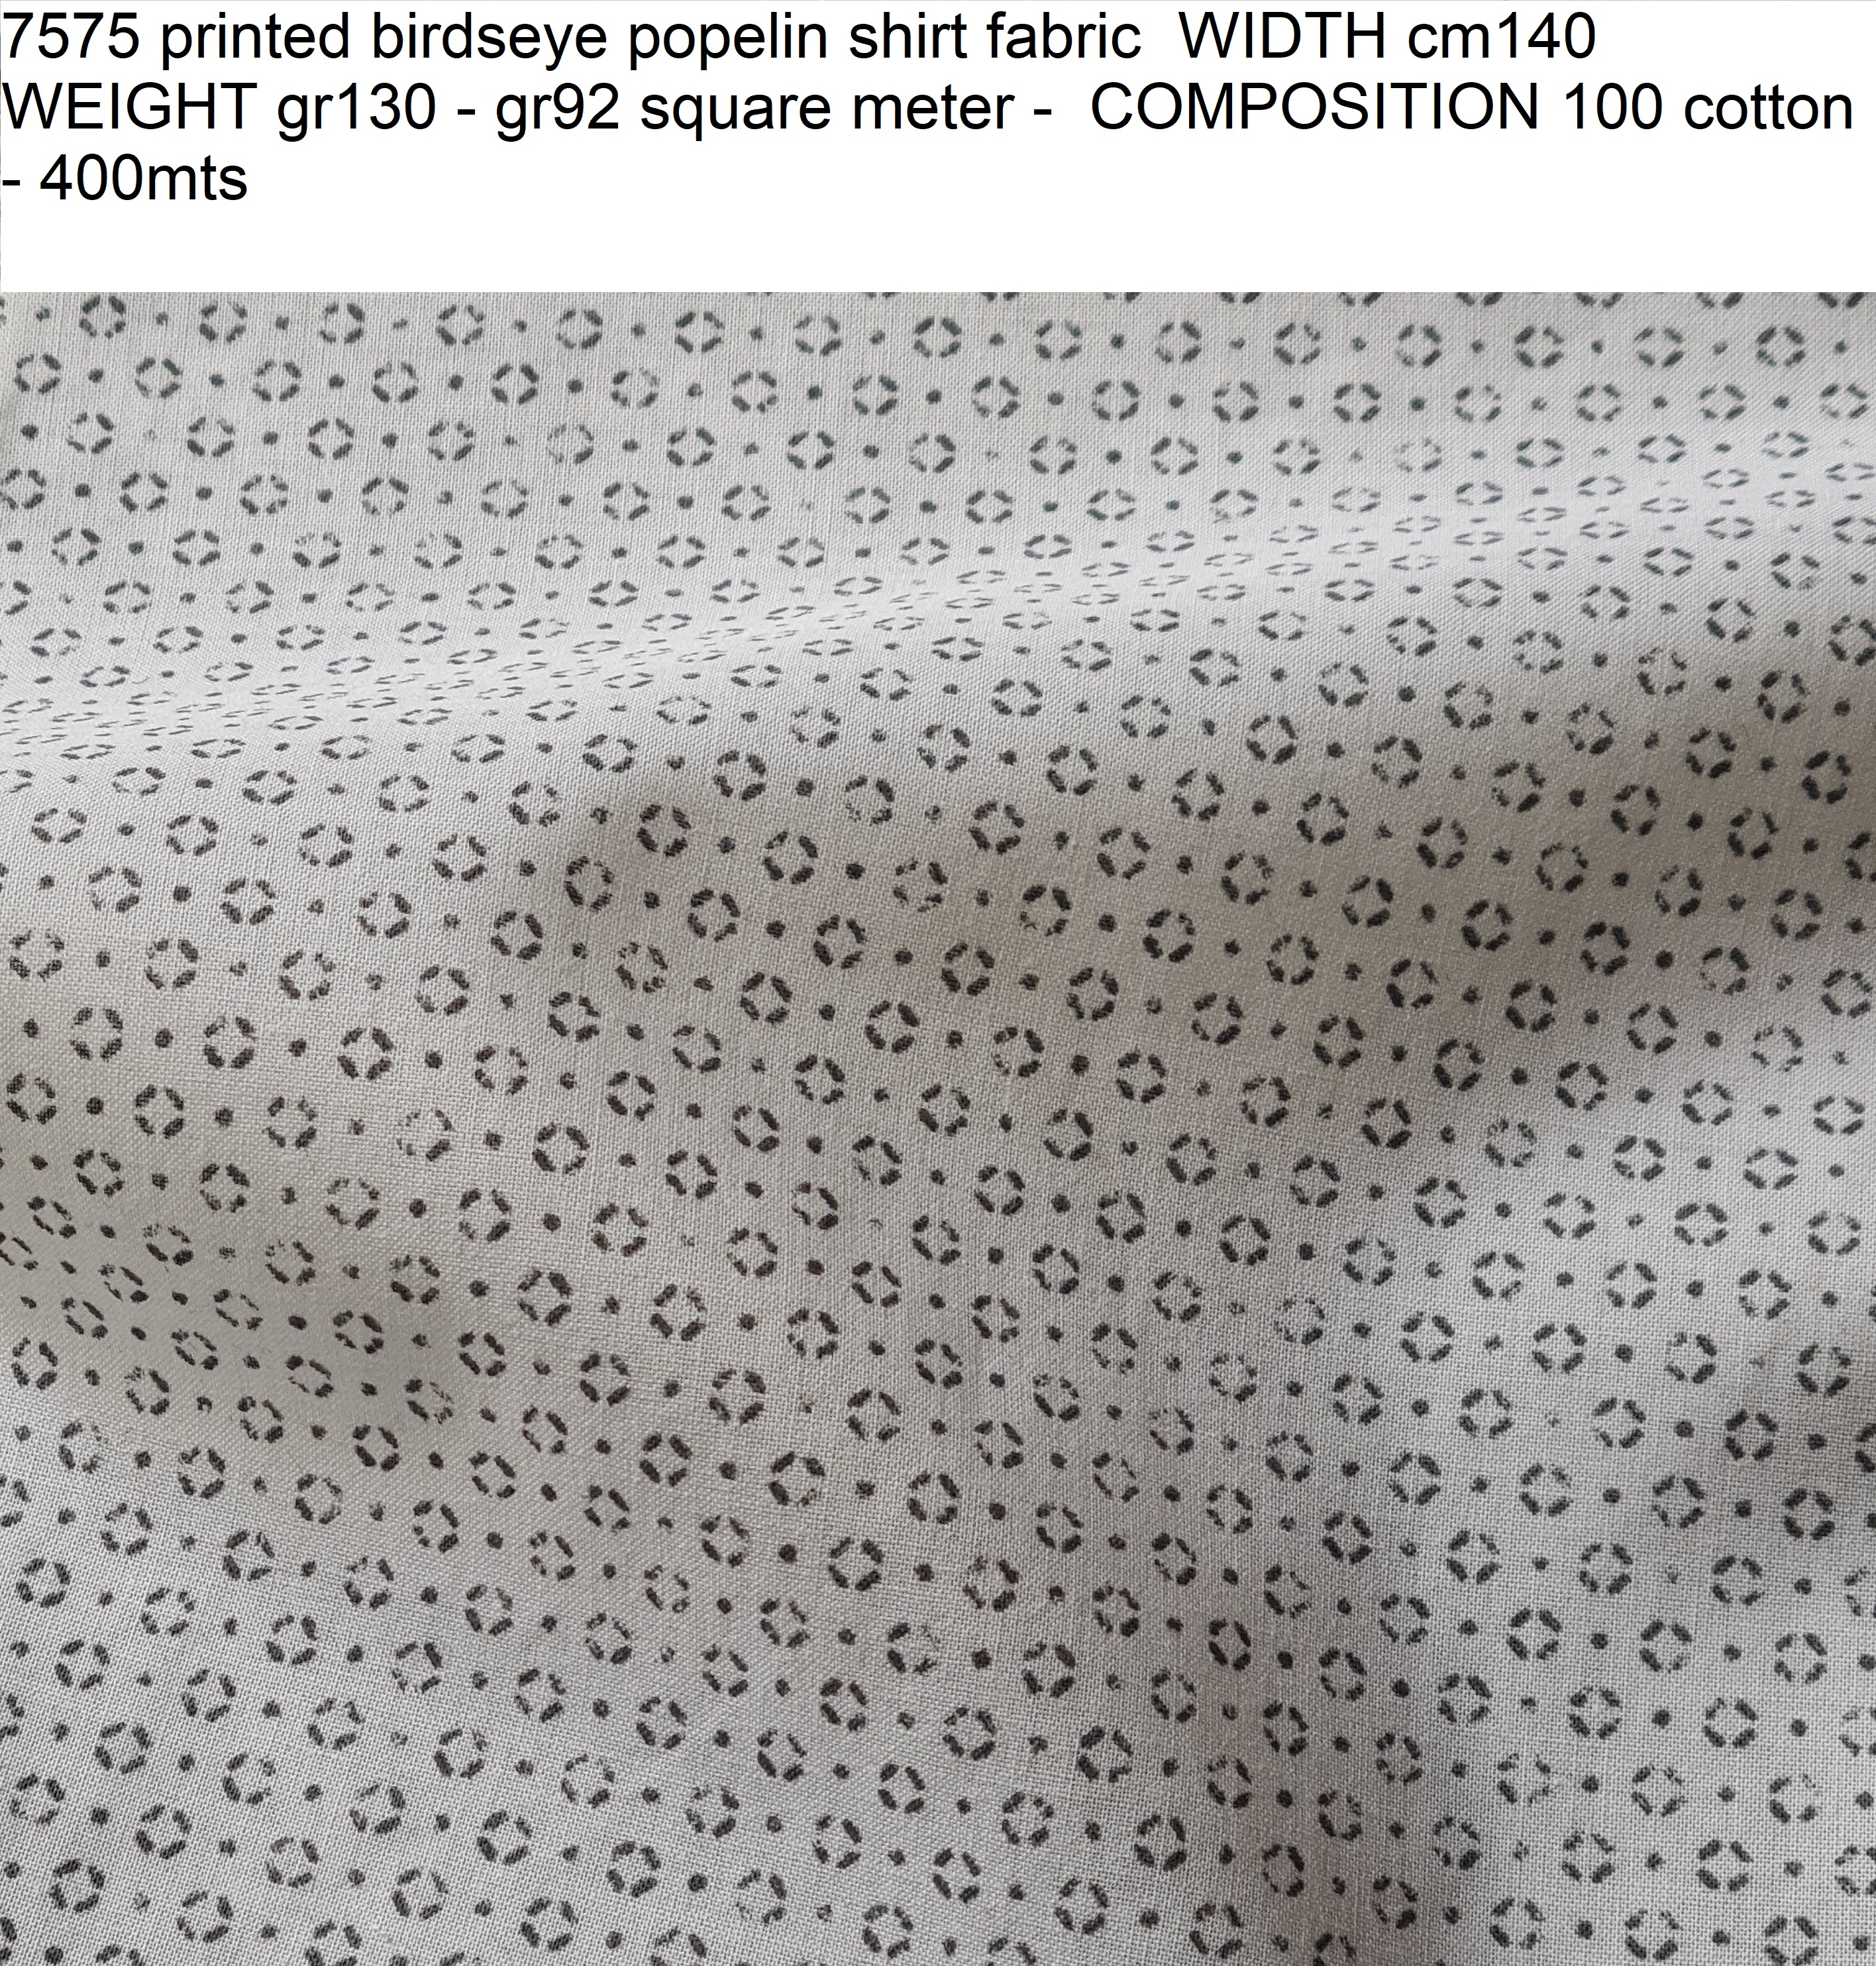 7575 printed birdseye popelin shirt fabric WIDTH cm140 WEIGHT gr130 - gr92 square meter - COMPOSITION 100 cotton - 400mts